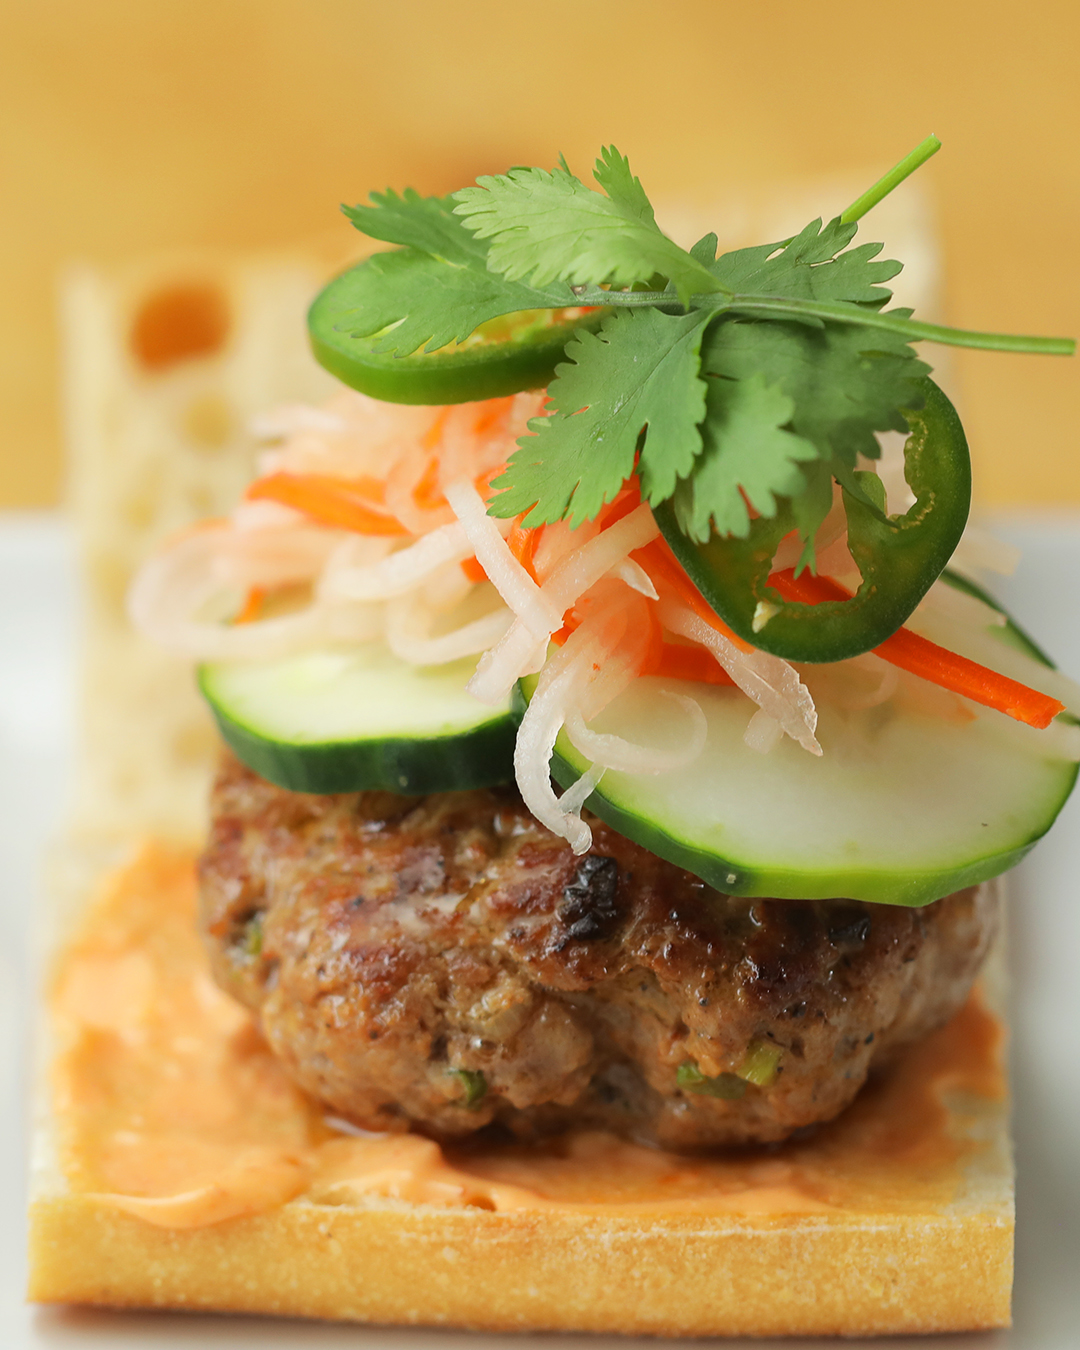 Top Chef Junior Pork Bánh Mì Burger